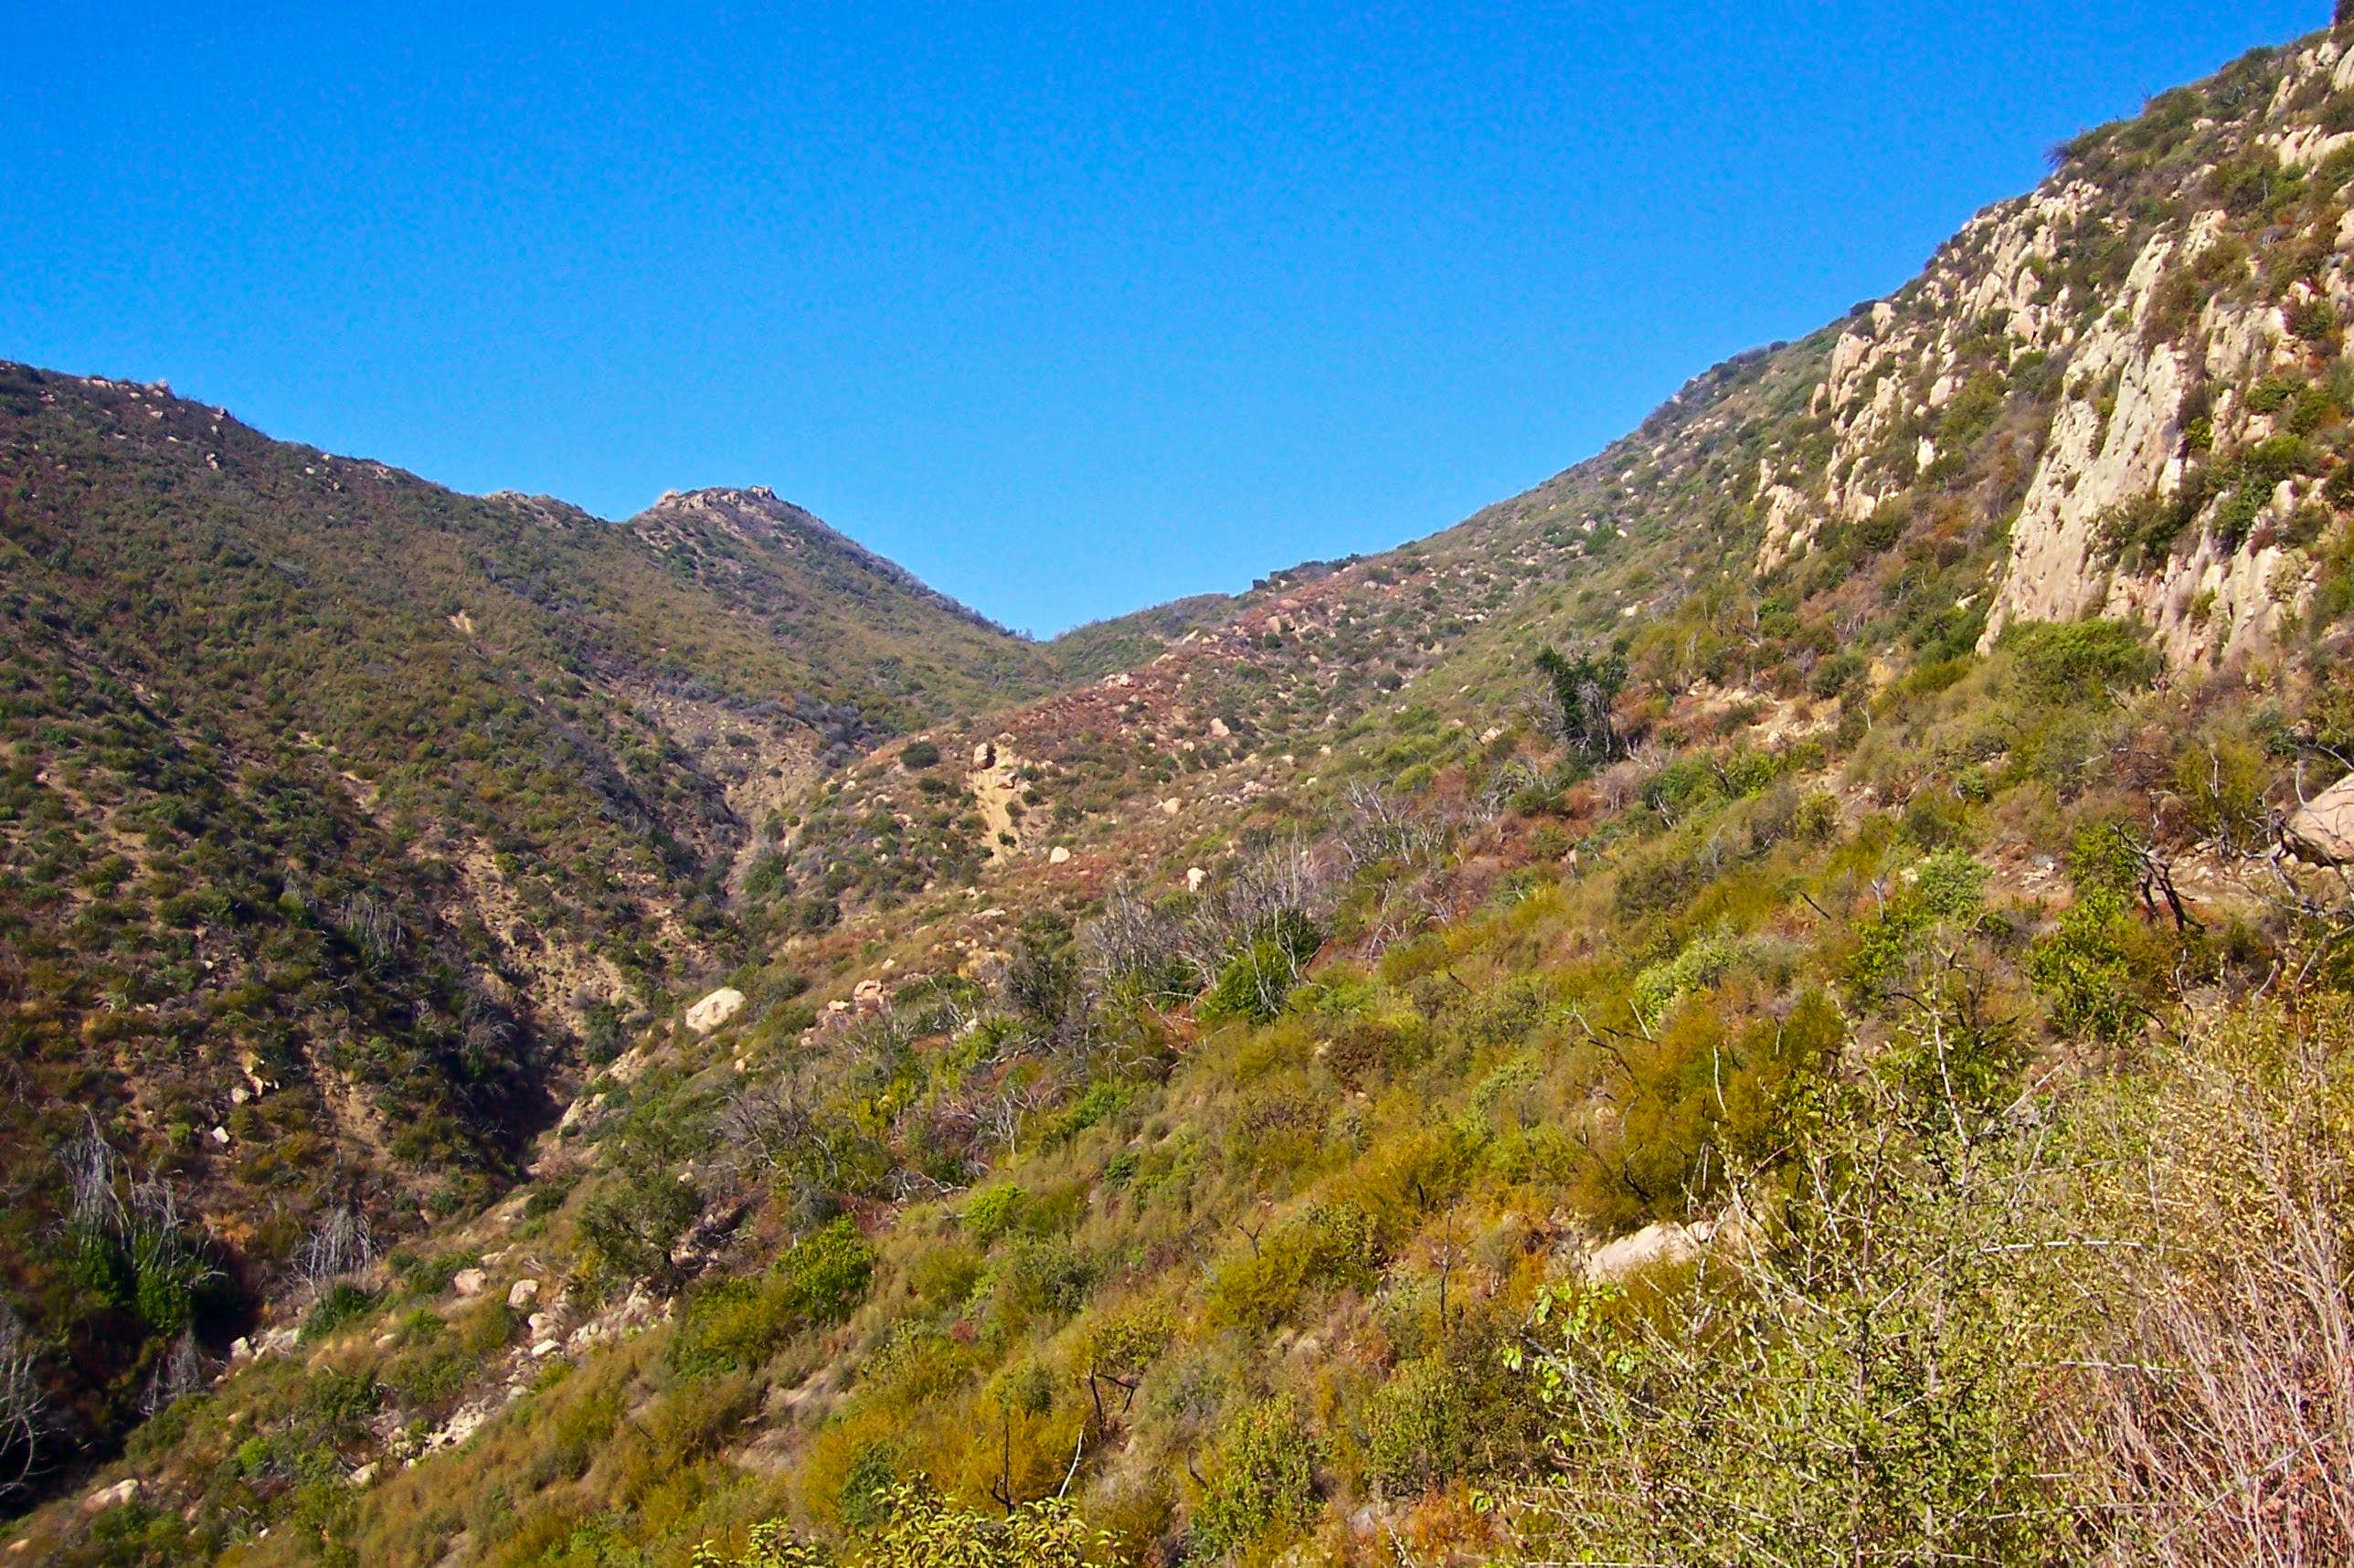 The Connector Trail, Rattlesnake Canyon to Mission Canyon